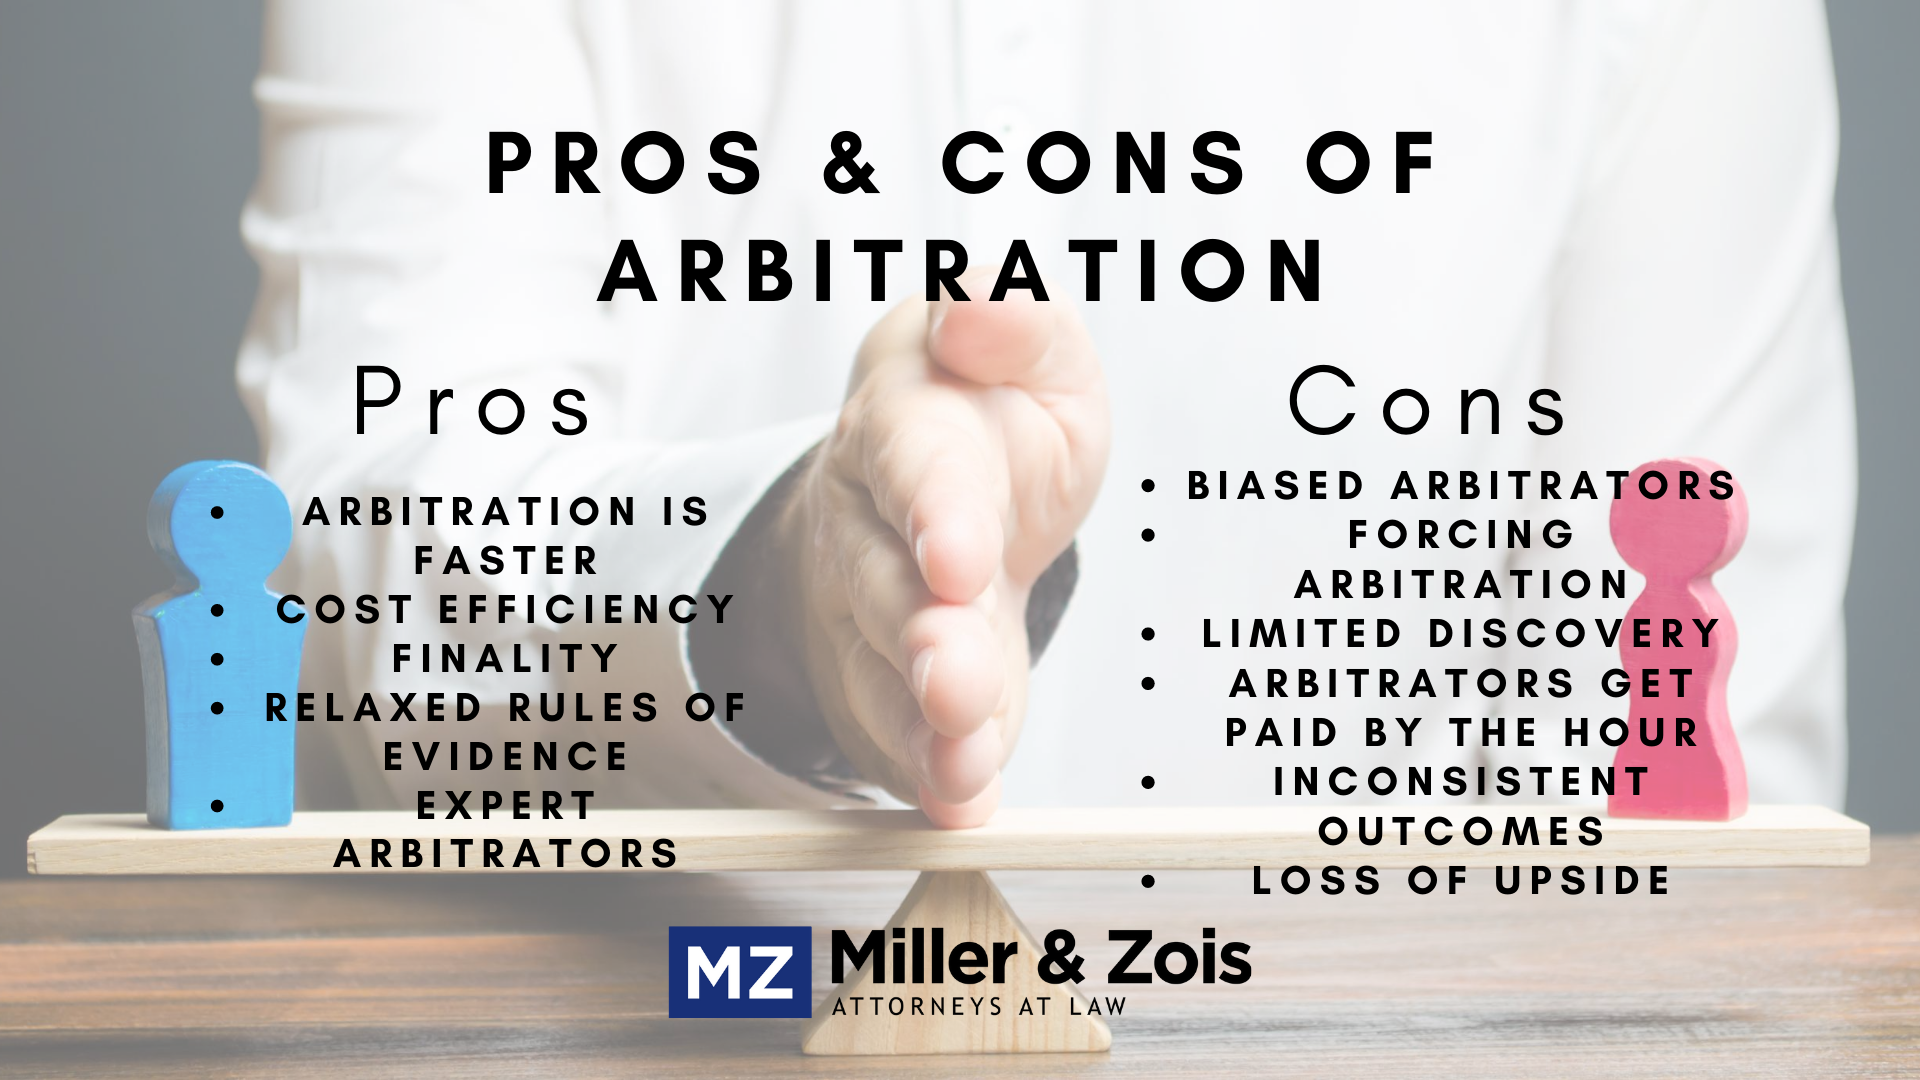 pros cons arbitration